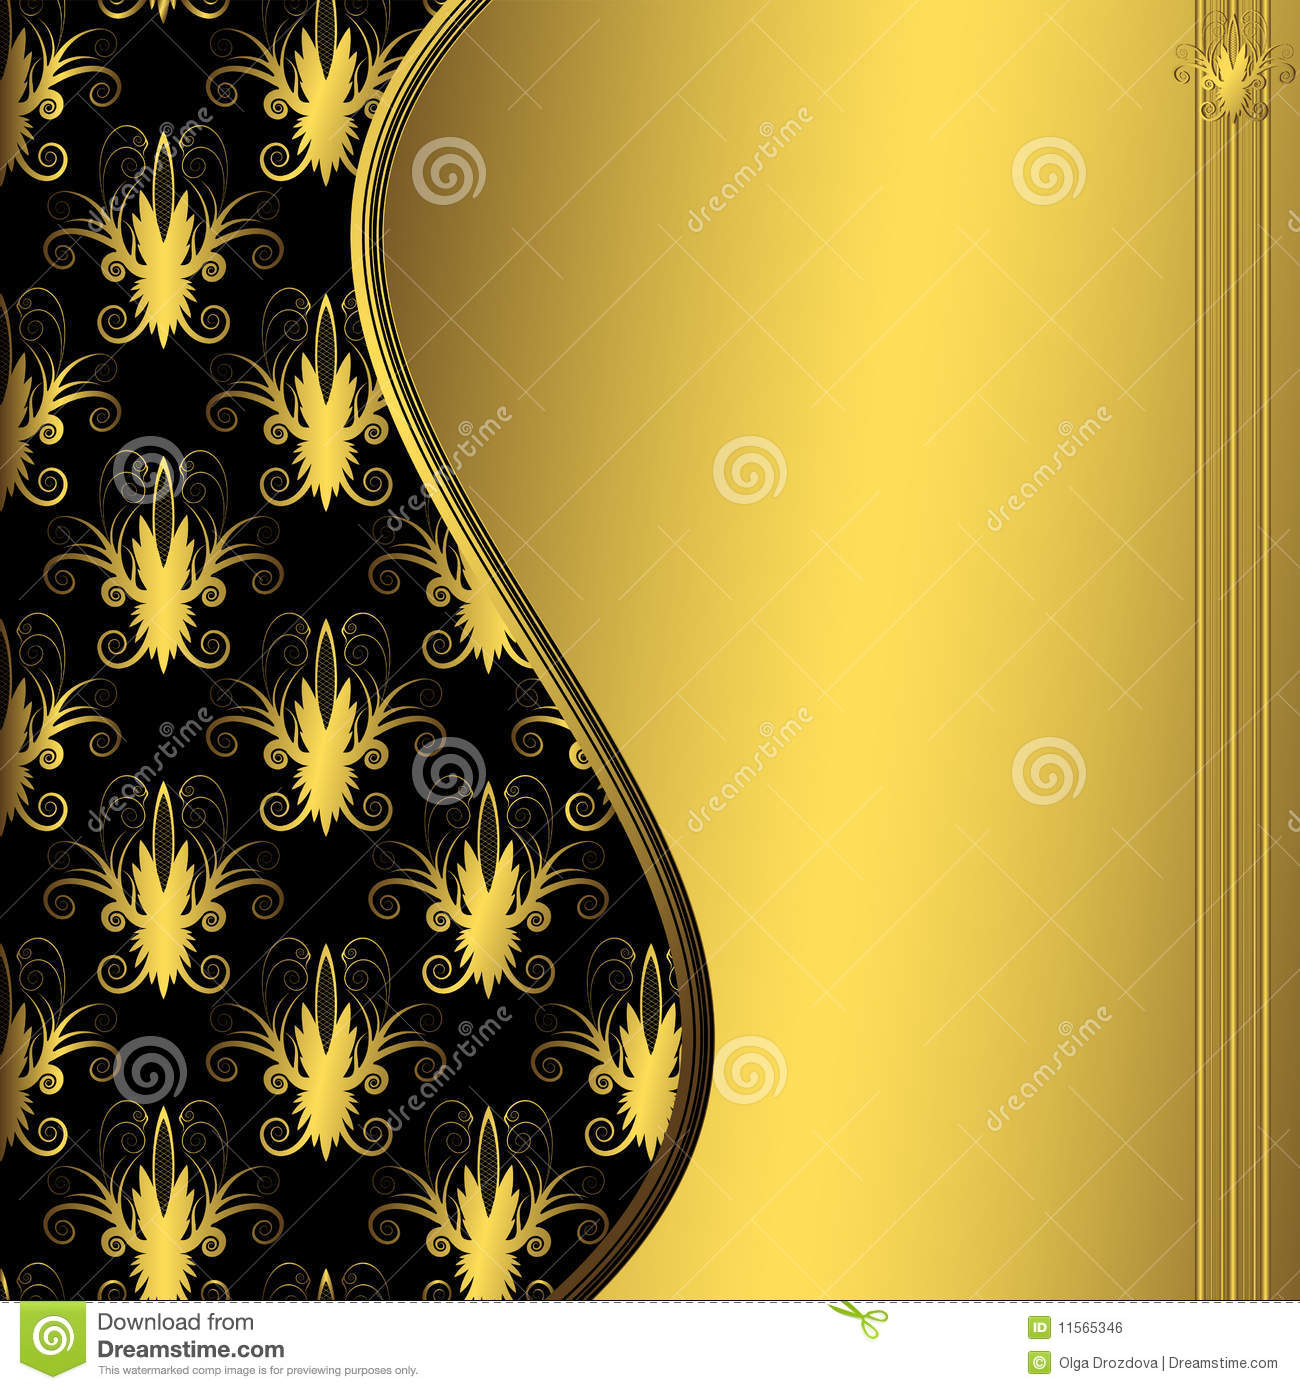 Black And Gold Decorative Frame Stock Vector Illustration Of